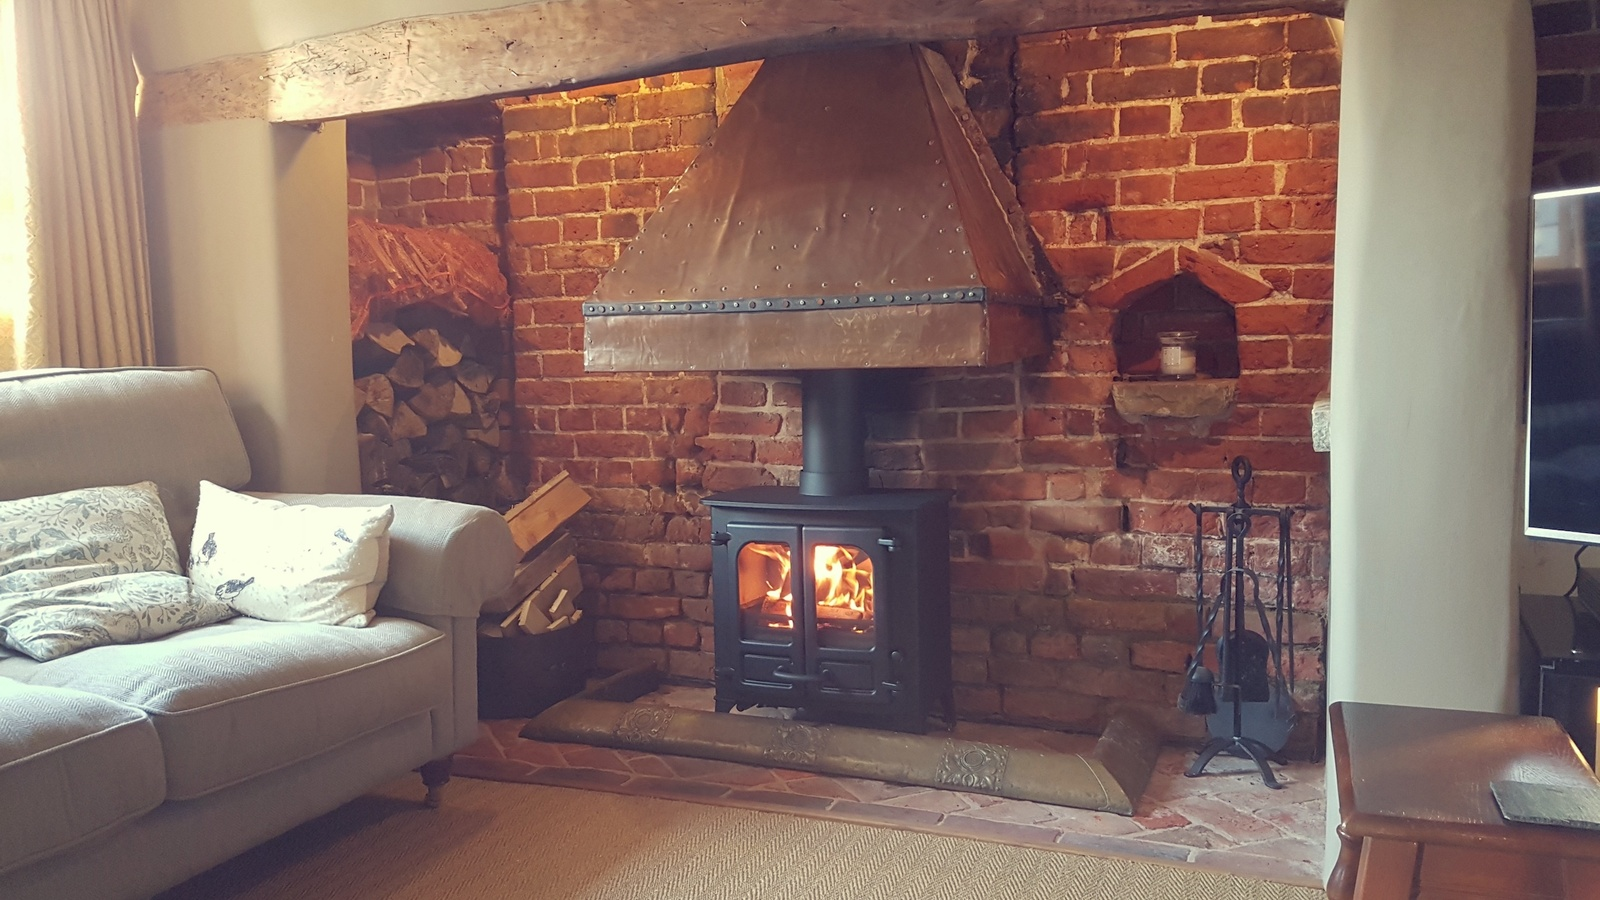 The Charnwood Island 1 at 'Copper Cottage' in Buckinghamshire